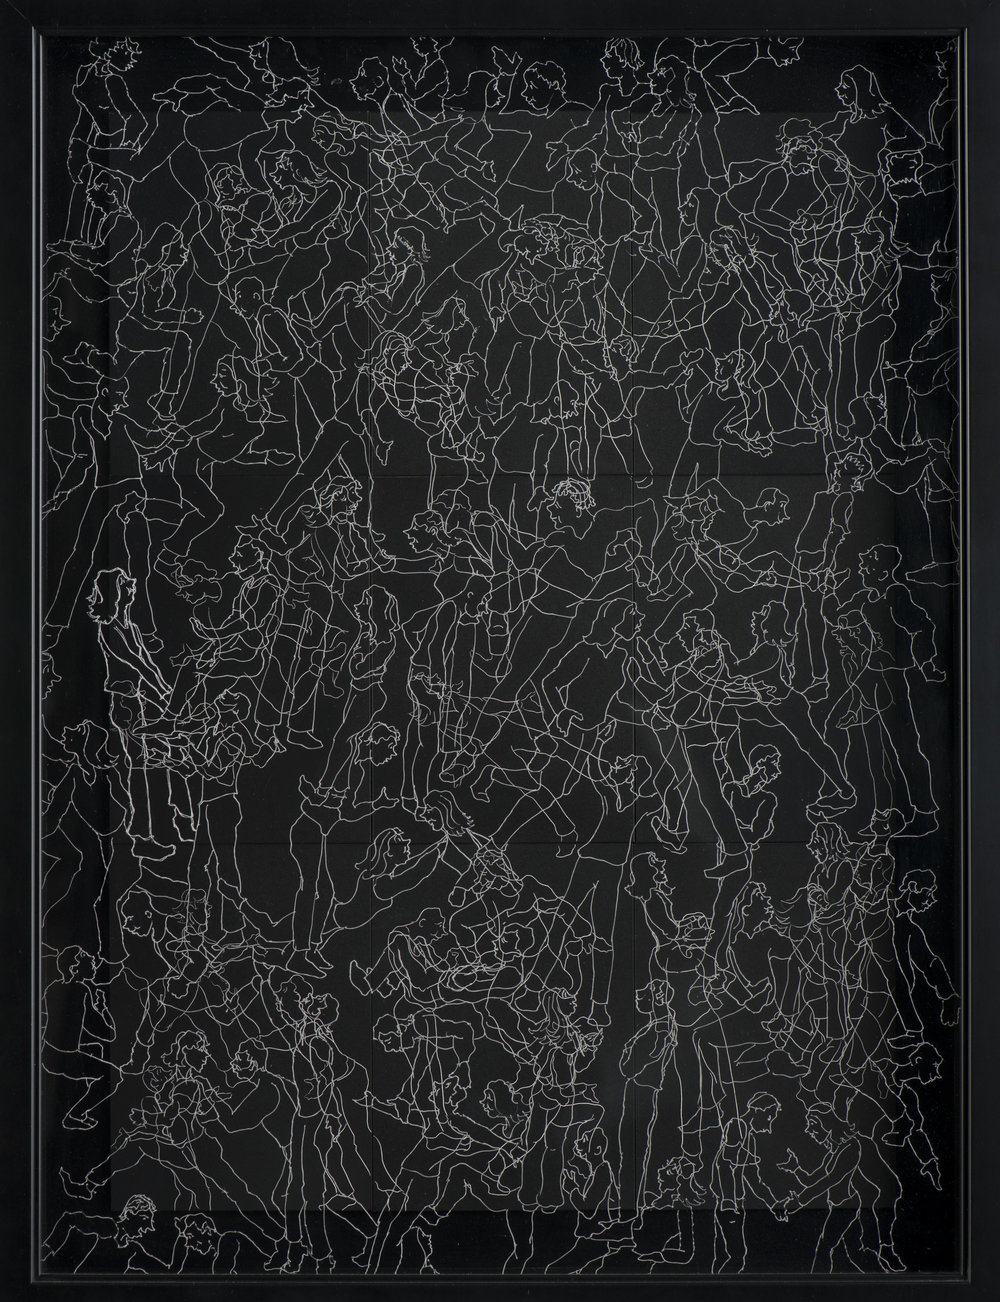 """INTERACTION 2 Black Scratchboard with Overlay of Etched Plexiglass Framed: 19"""" x 22"""" $1500.00 Sold"""